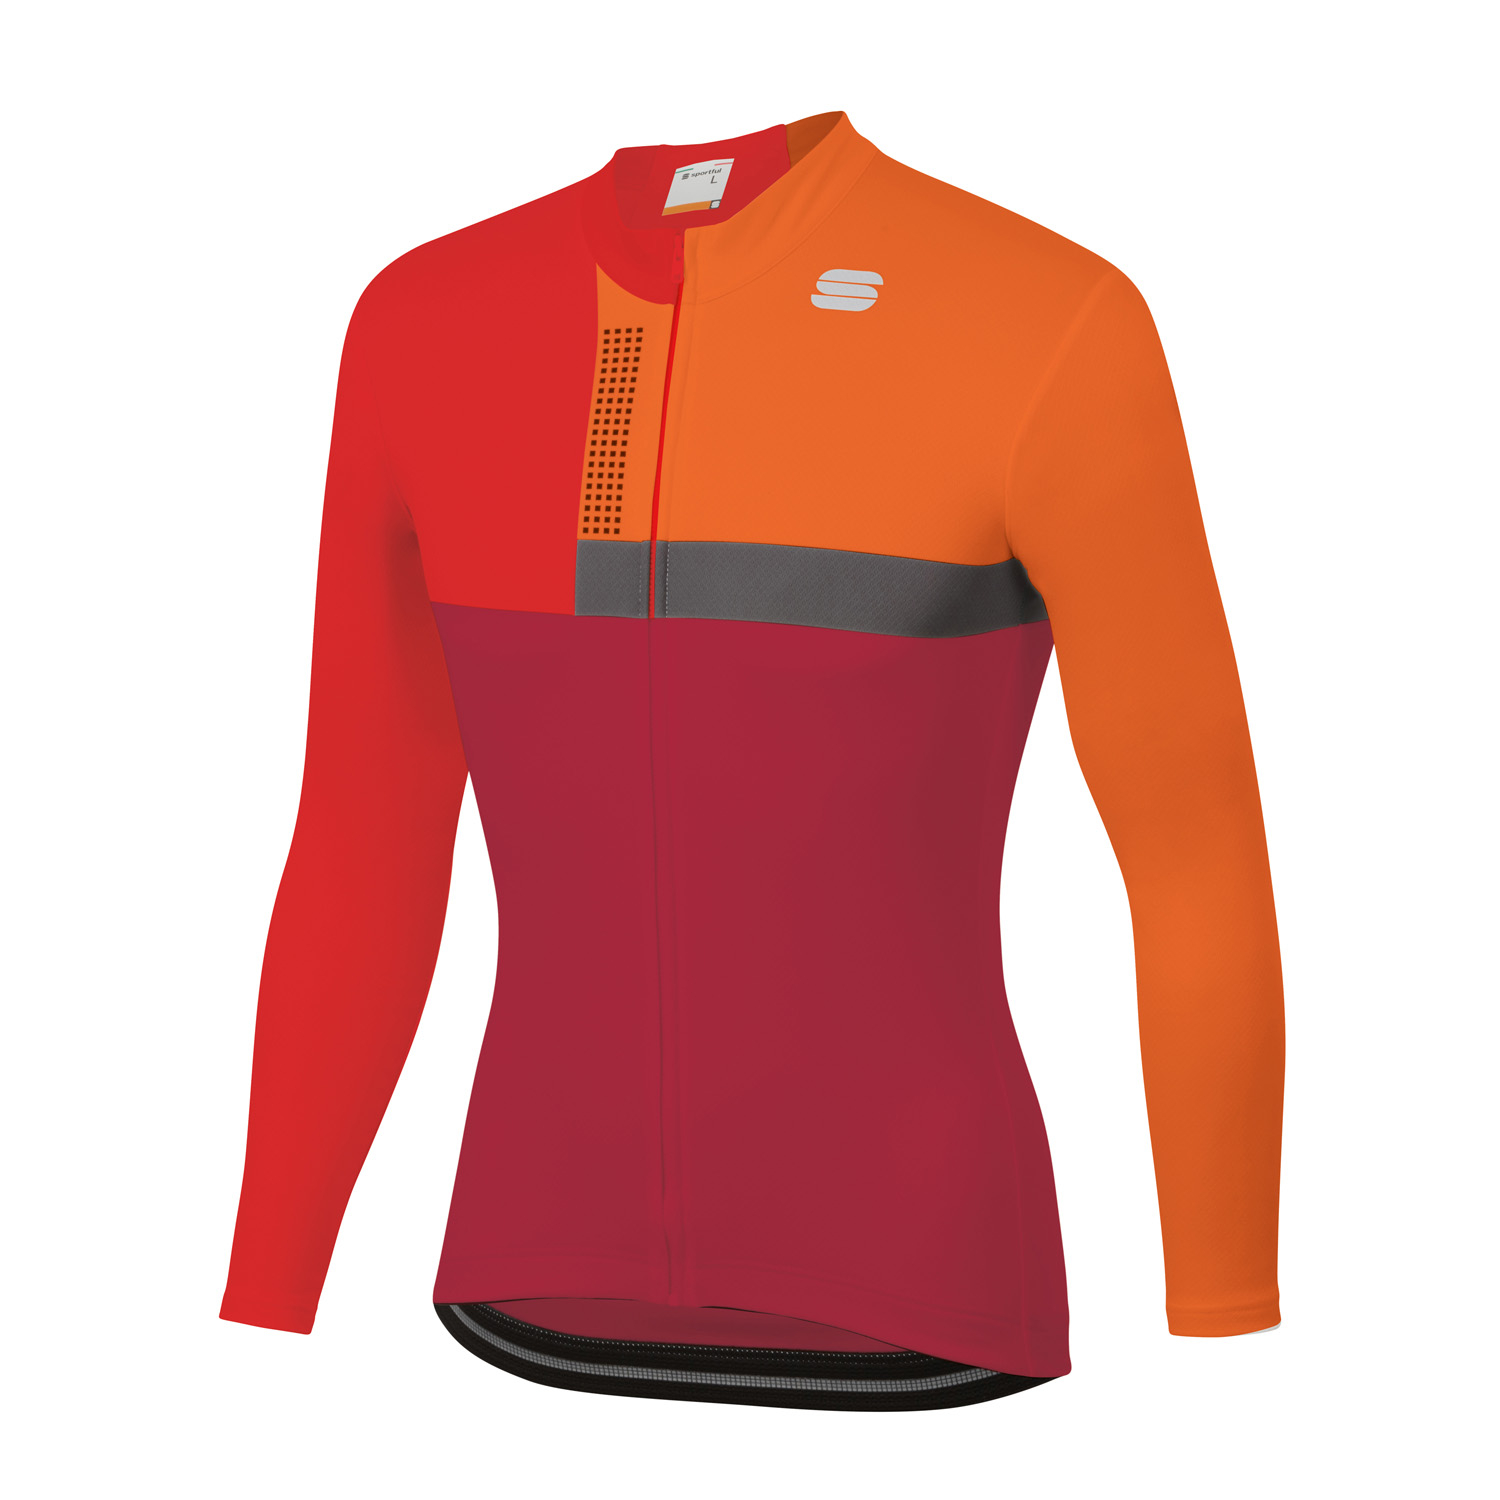 | Sportful Fietsshirt lange mouwen Heren Rood Anthraciet - BOLD THERMAL JERSEY RED RUMBA ANTHRACITE